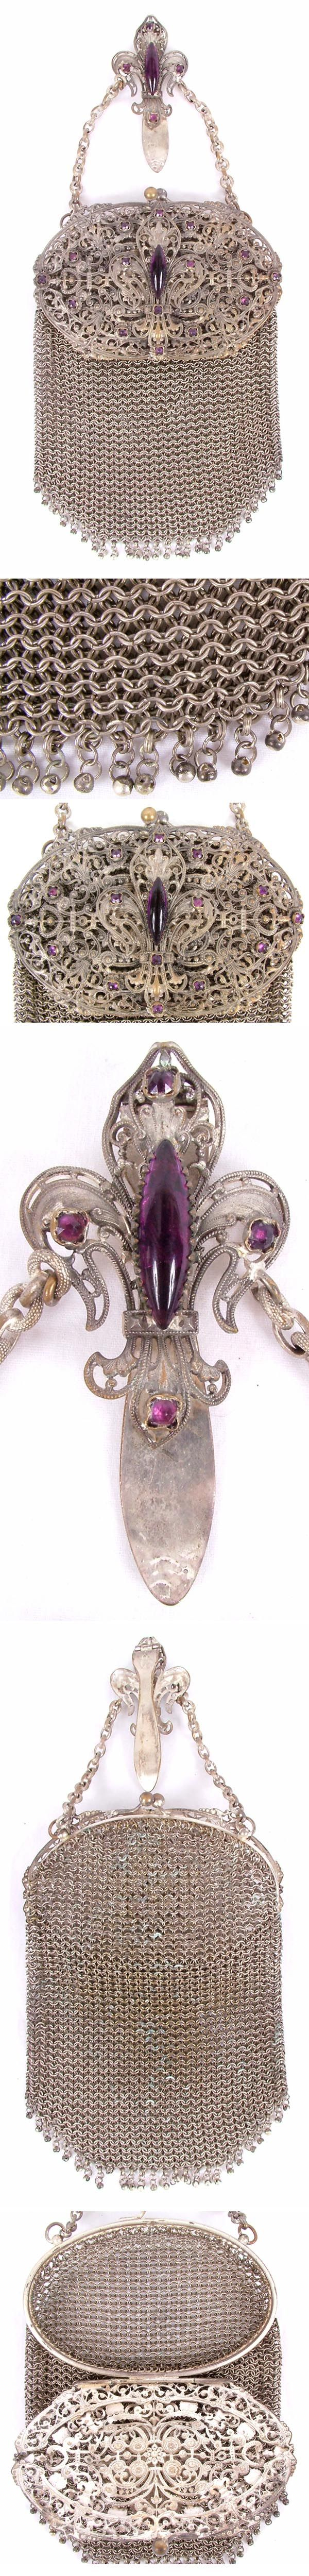 Love the detail and craftsmanship of this beautiful piece.